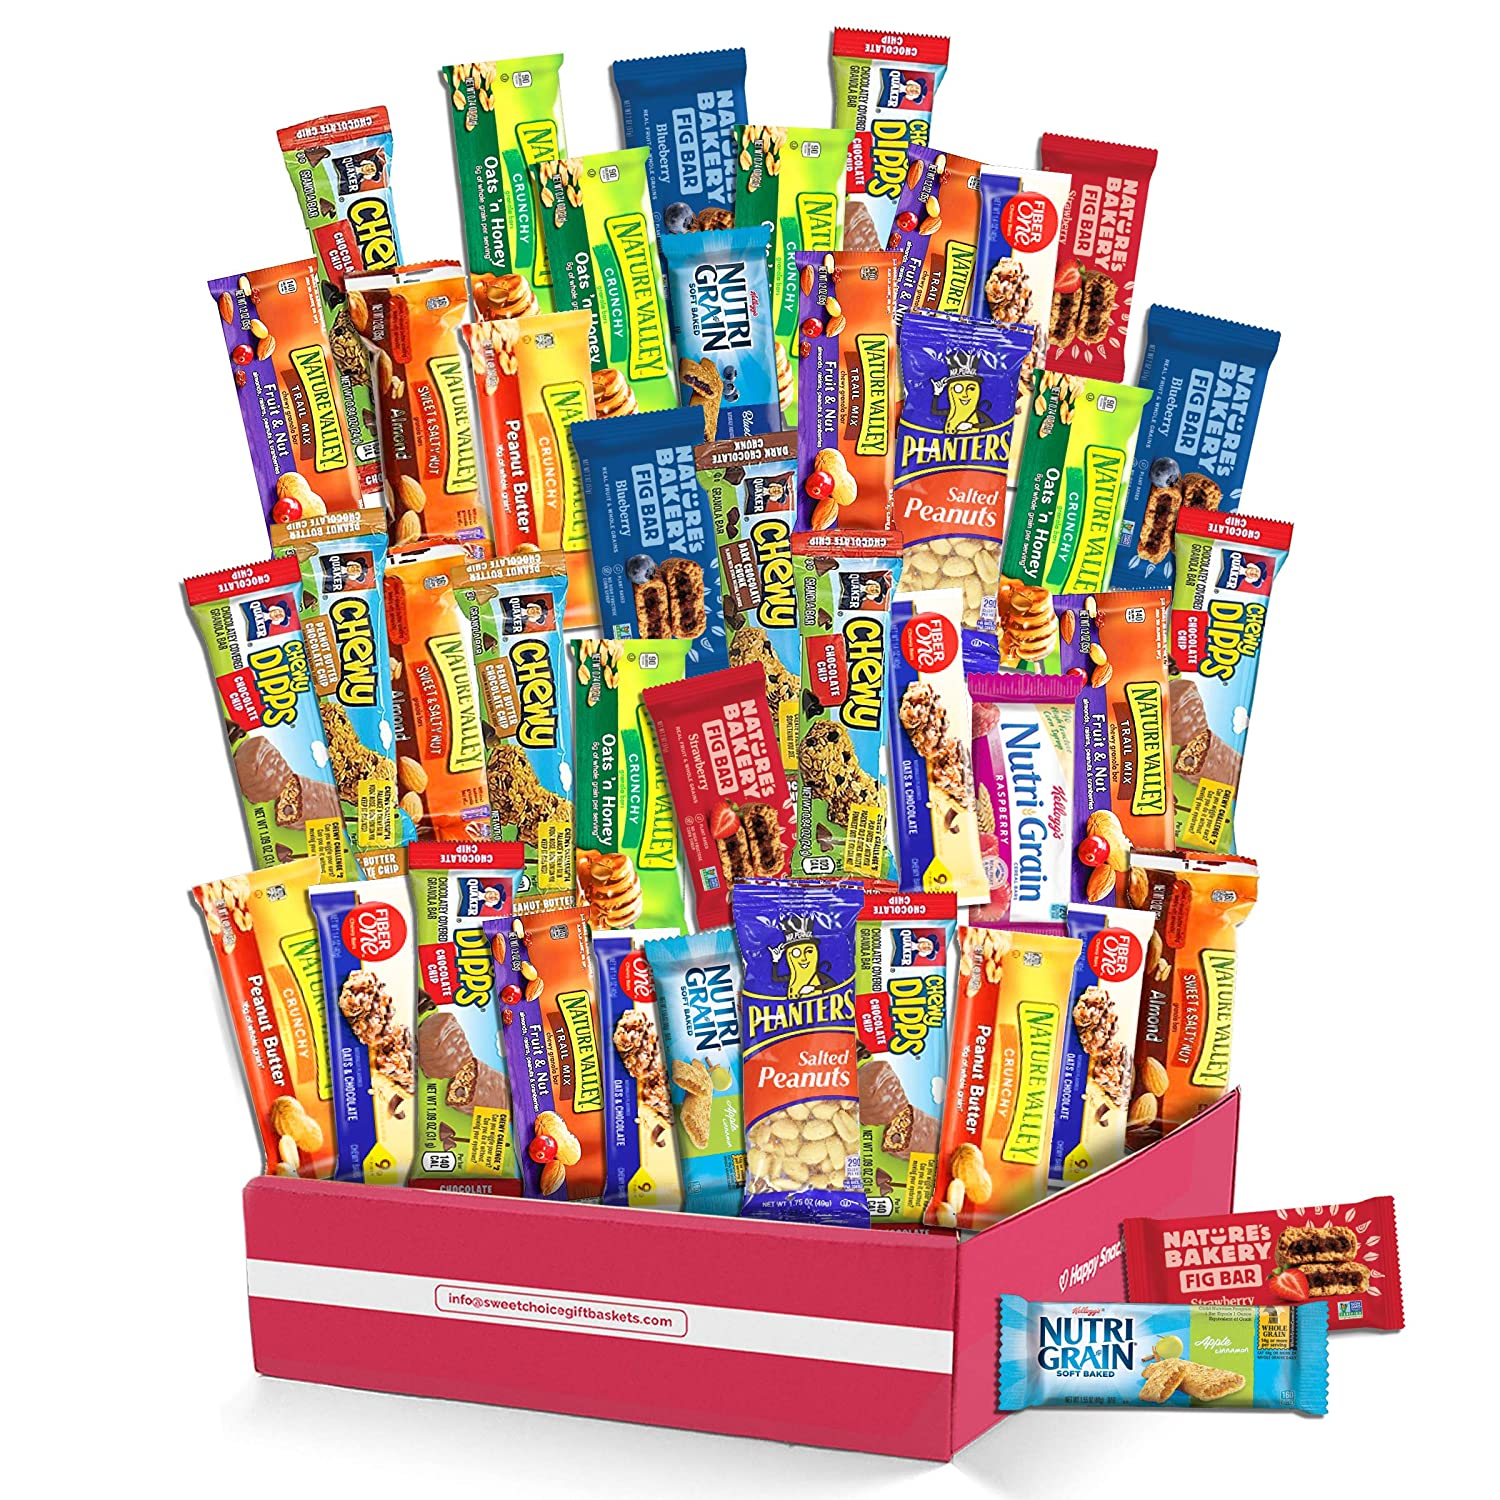 Healthy Snacks and Bars Variety Pack Gift Snack Box care package Granola Bars- Bulk Sampler(40 count)